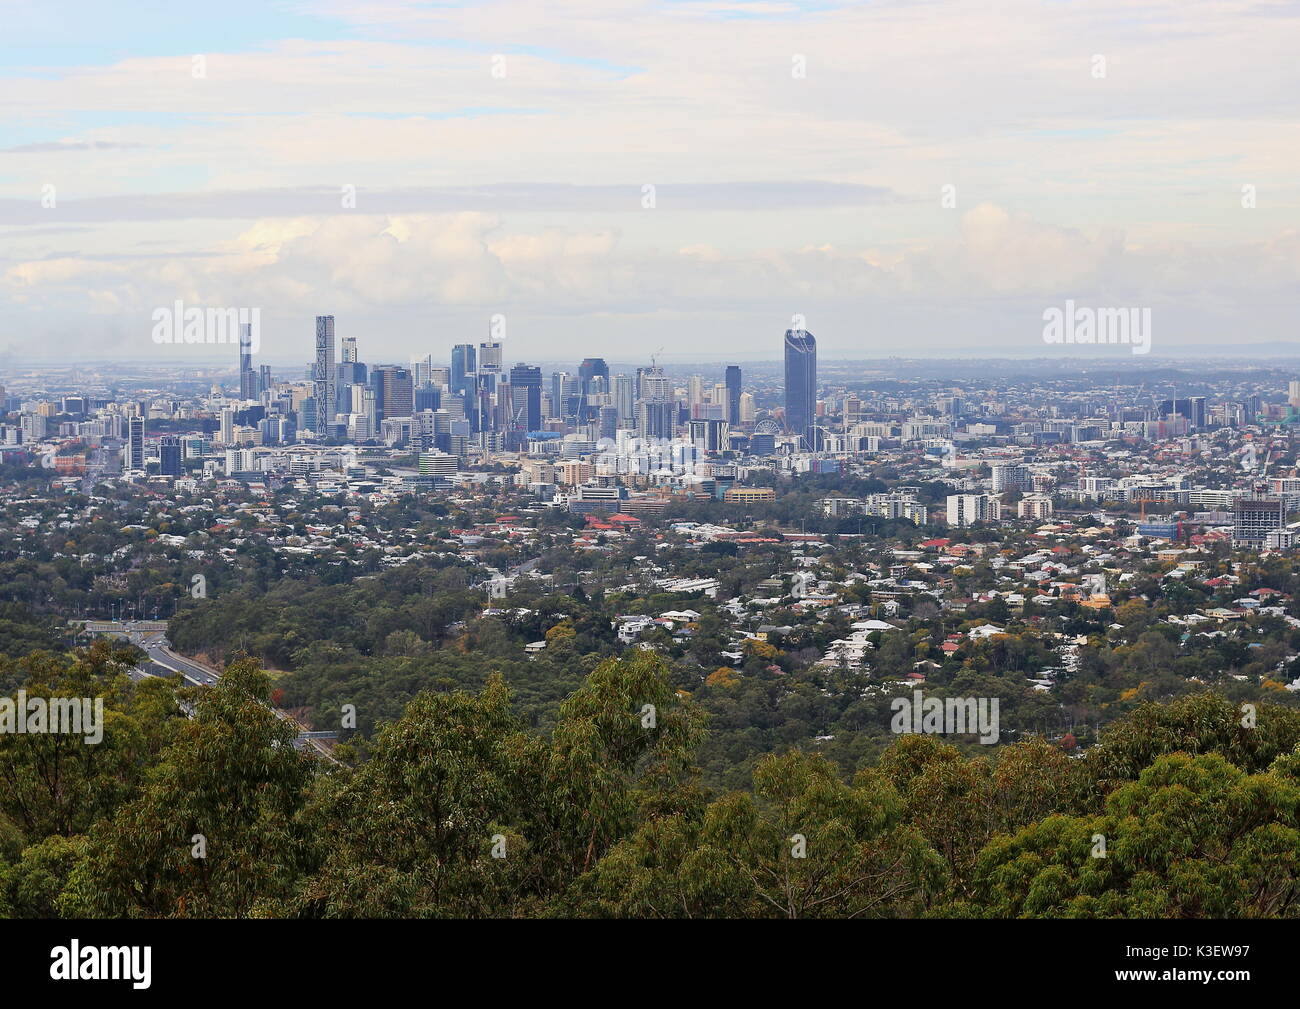 View of Brisbane CBD from Mount Coot-tha Lookout point, Brisbane, Queensland, Australia - Stock Image